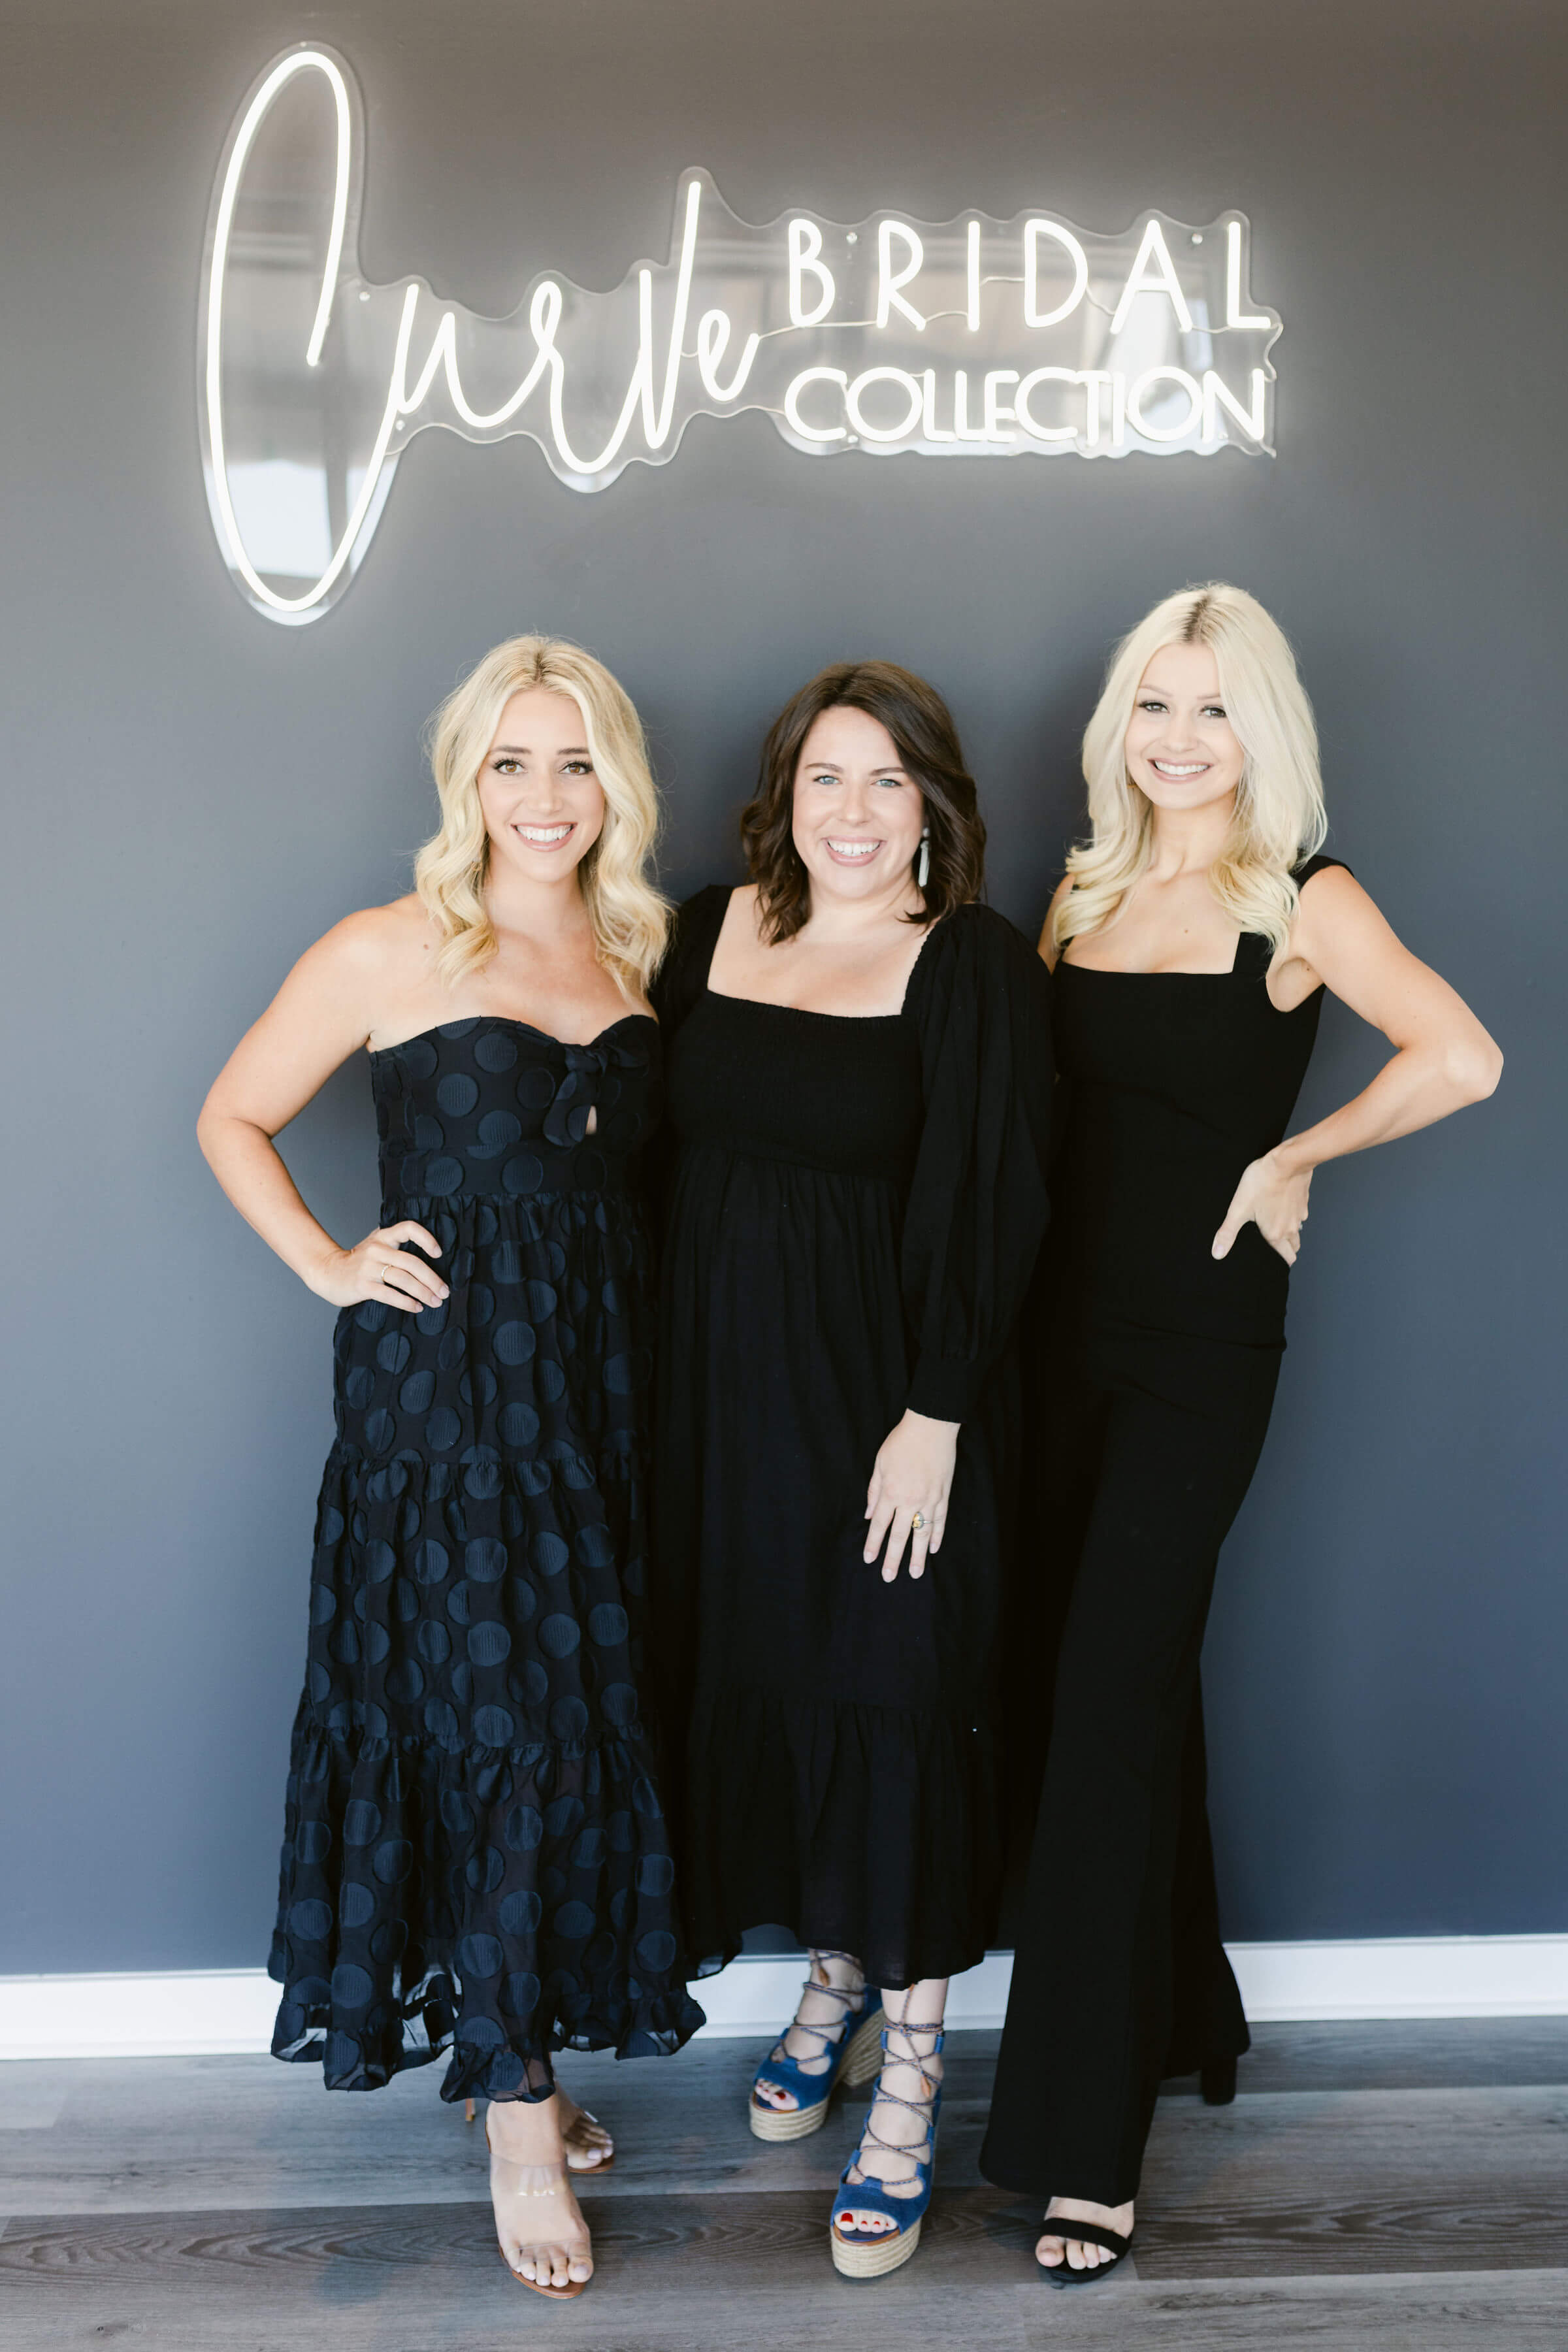 Curve Bridal Collection Owners